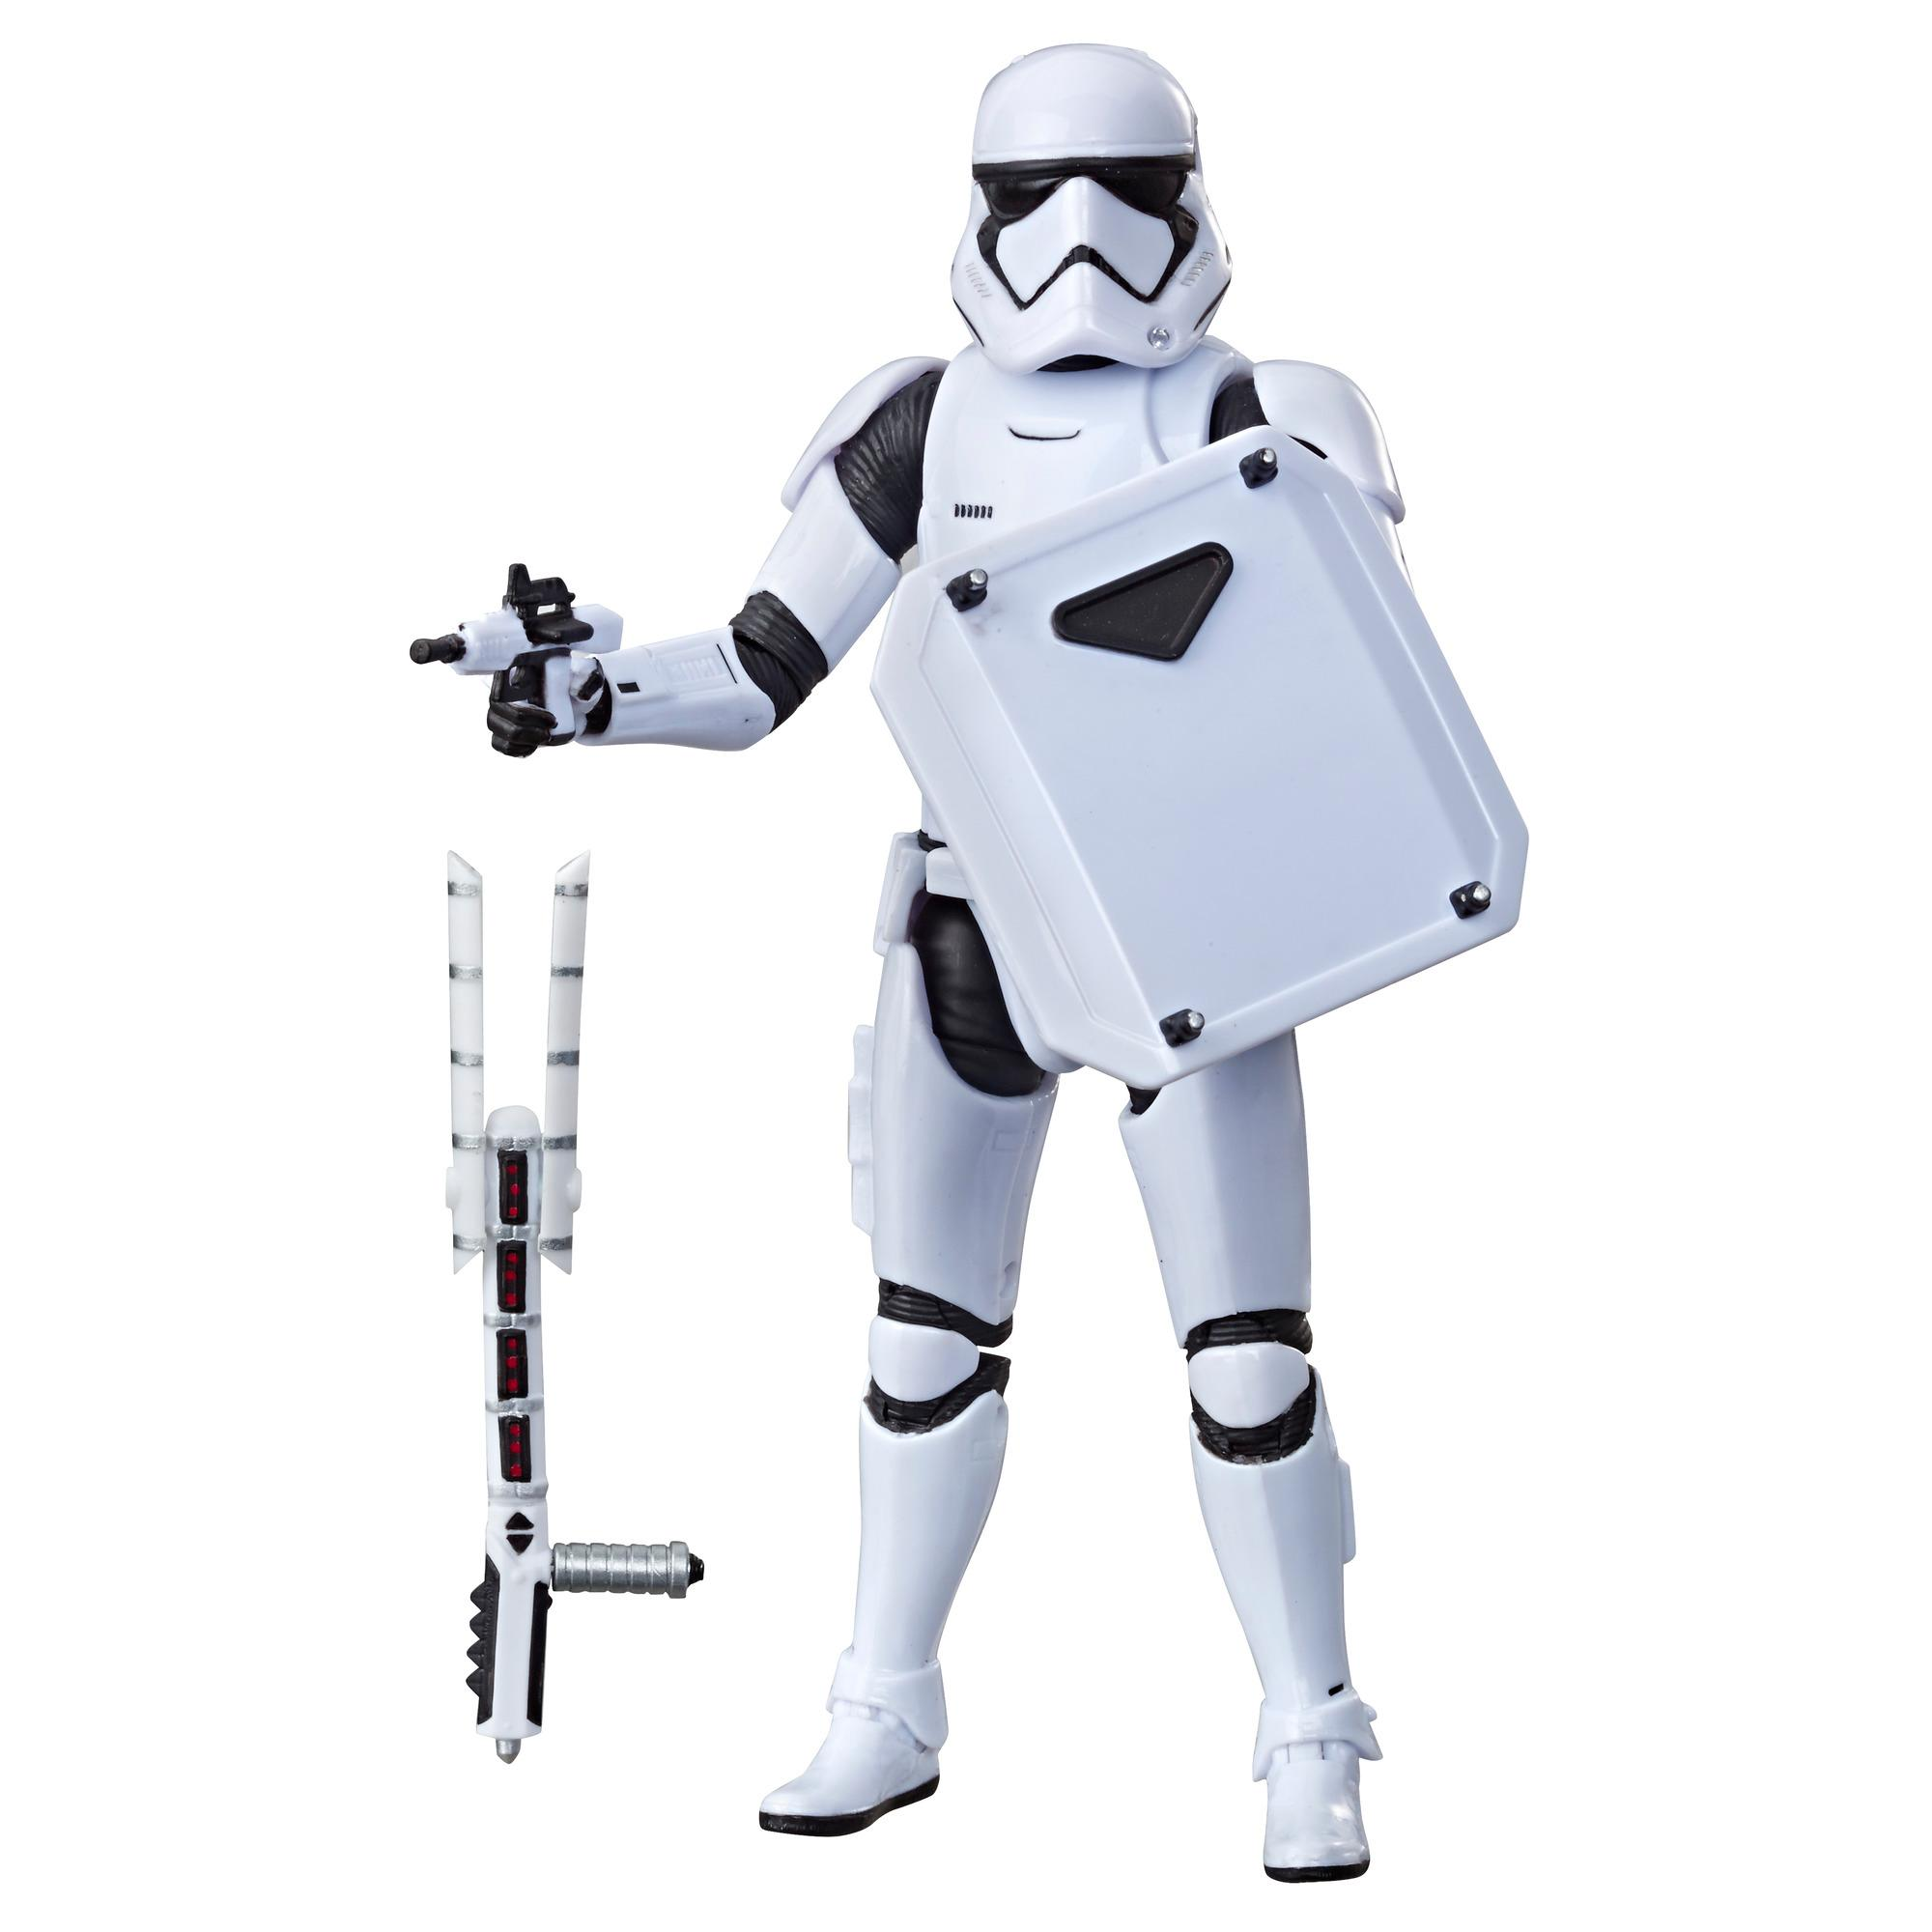 Star Wars The Black Series First Order Stormtrooper Toy 6-inch Scale Collectible Action Figure, Kids Ages 4 and Up